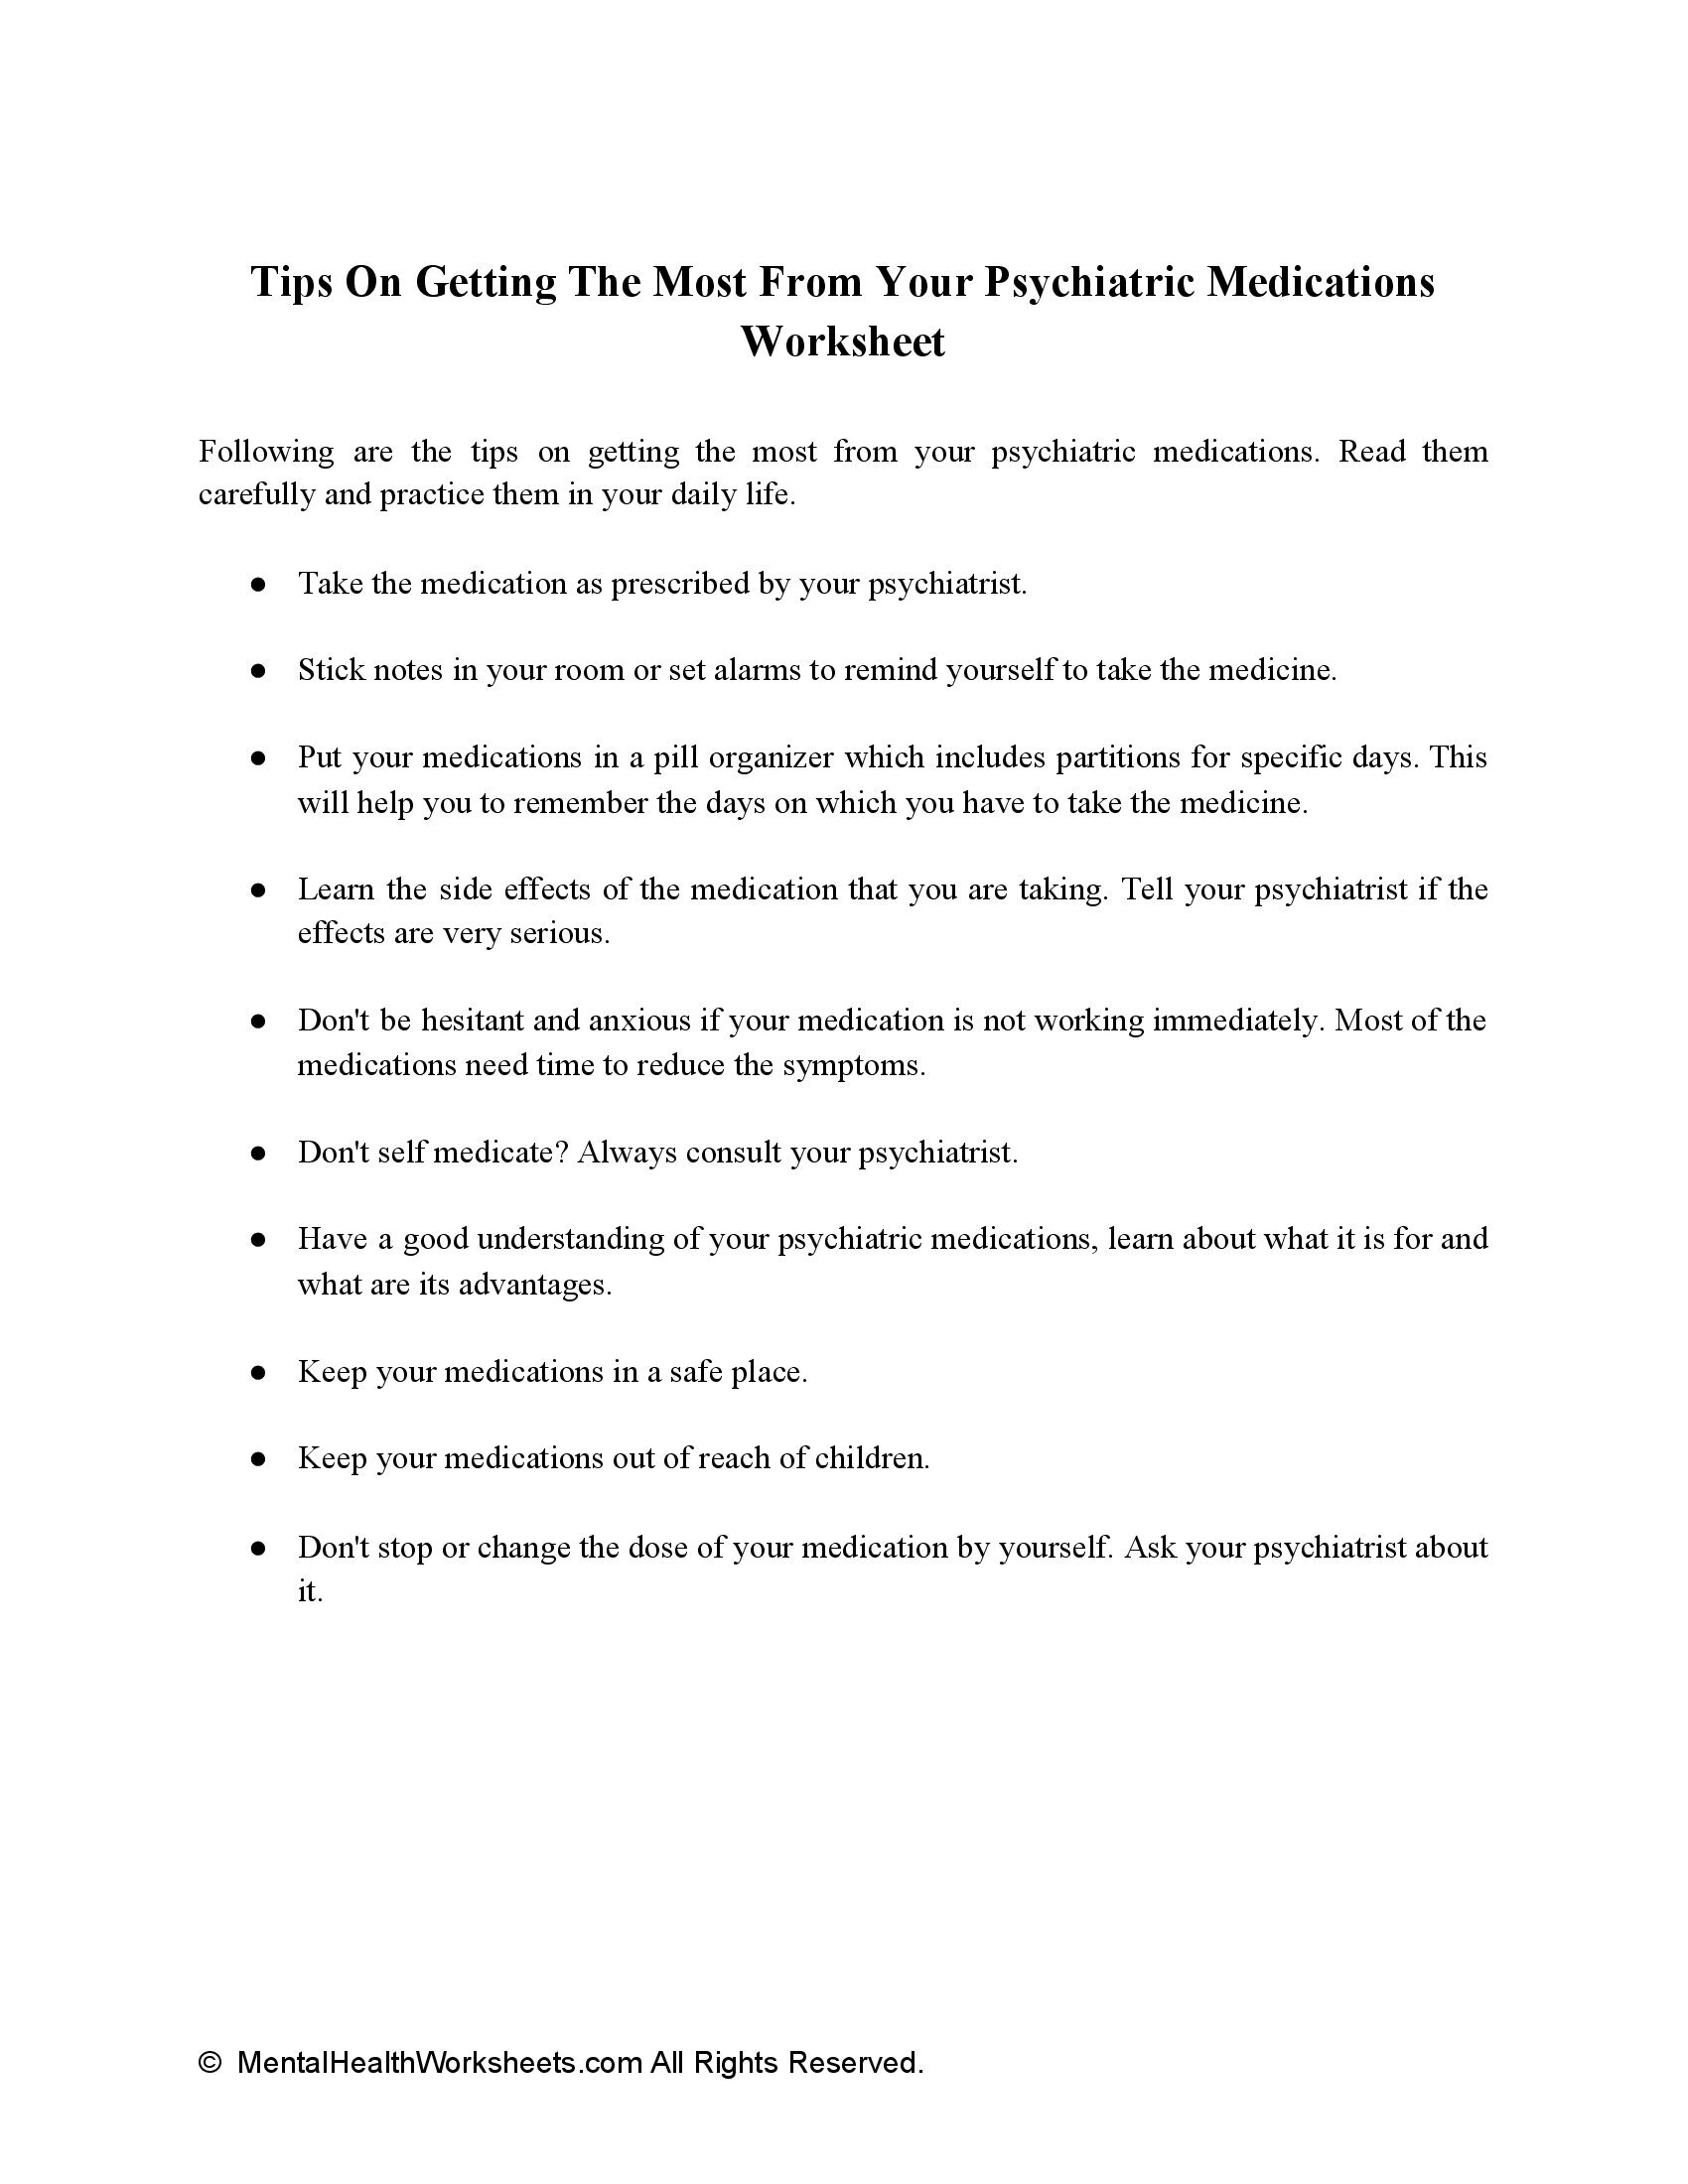 Tips On Getting The Most From Your Psychiatric Medications Worksheet